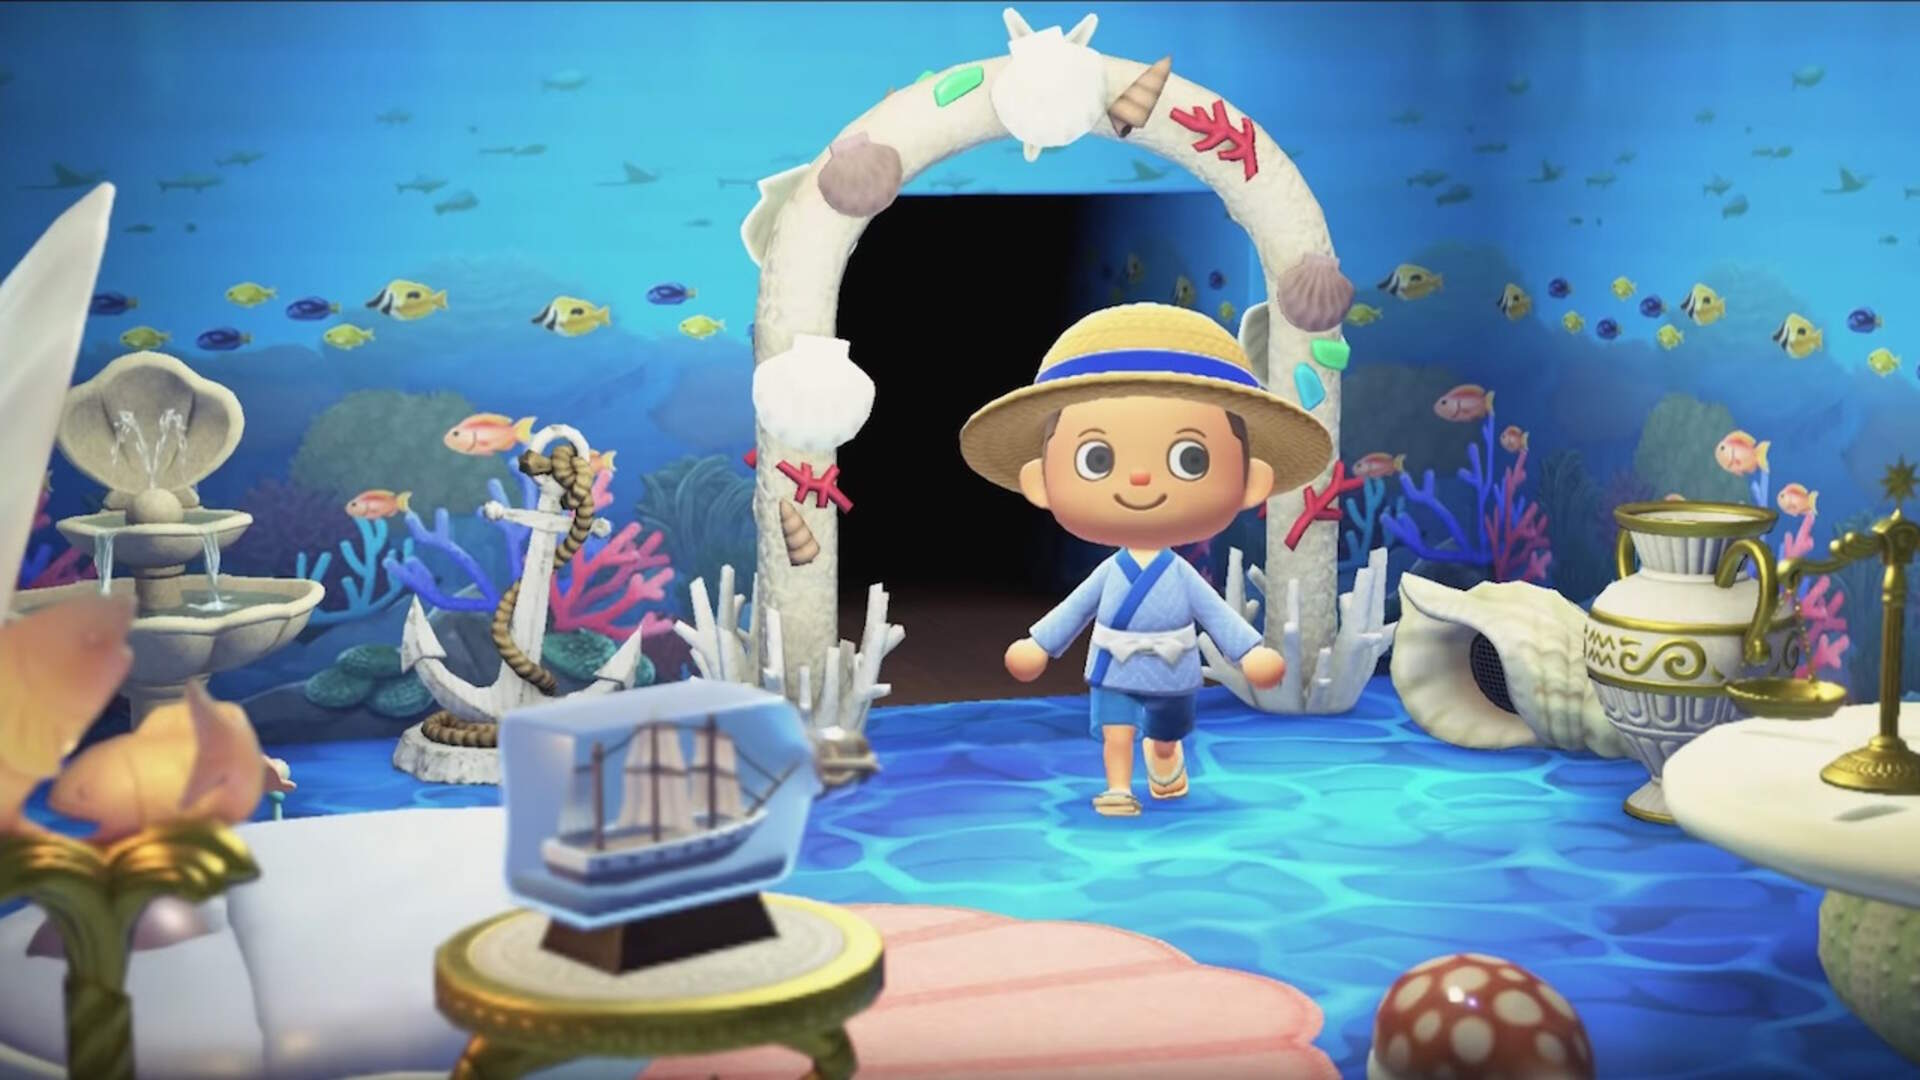 Animal Crossing New Horizons Appears To Let You Decorate Your